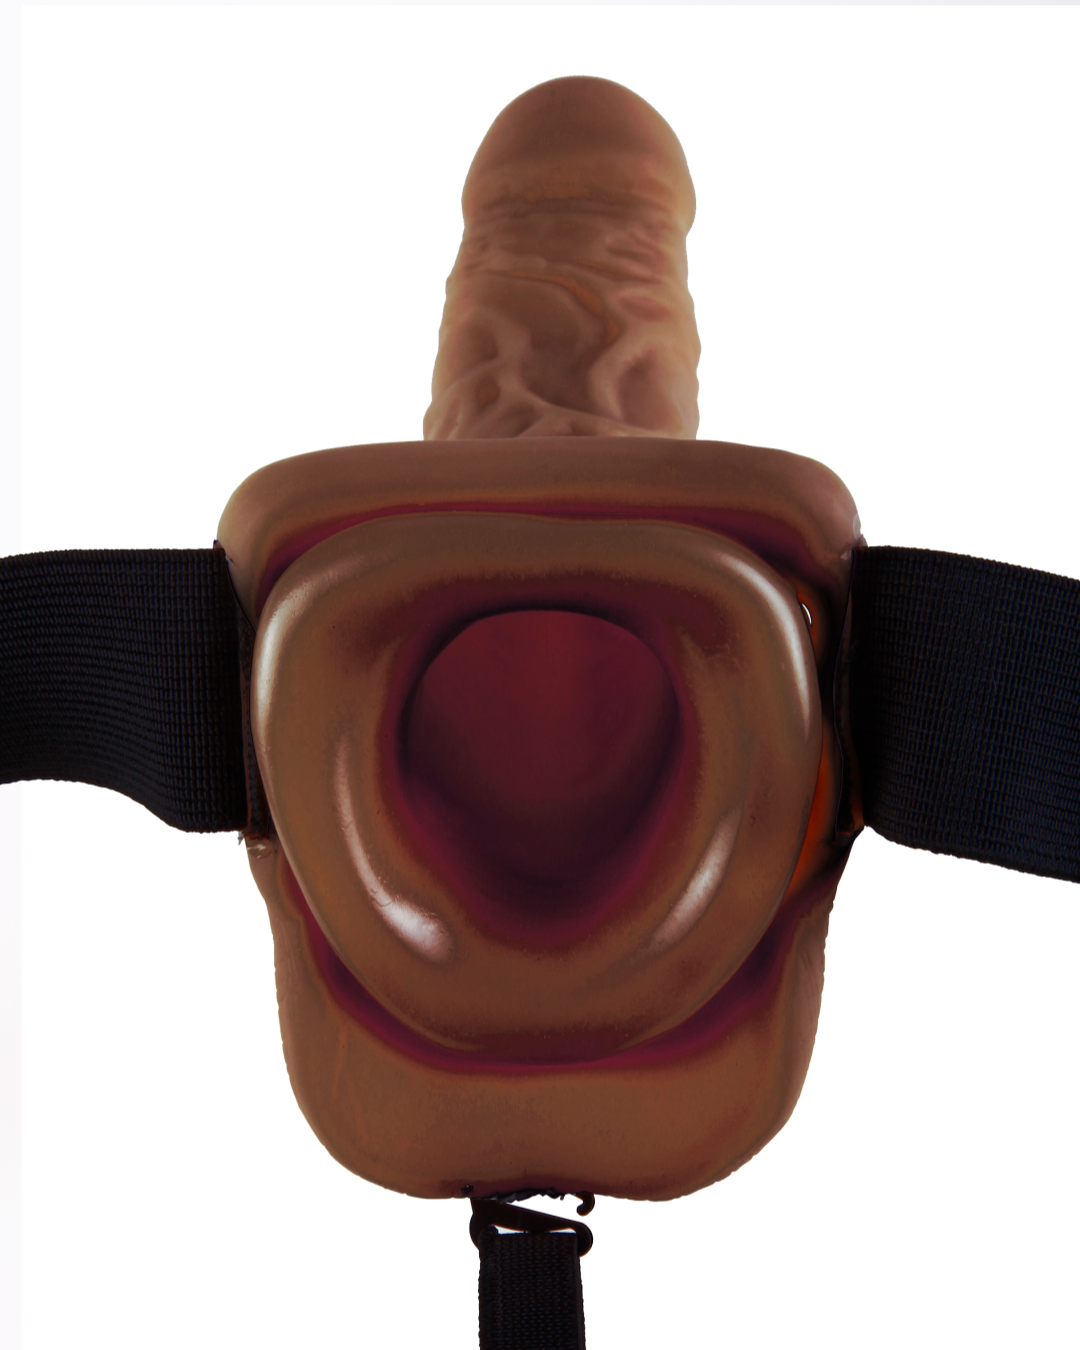 Fetish Fantasy Vibrating Hollow Strap On Dildo with Balls 9 inches - Chocolate view inside the hollow end